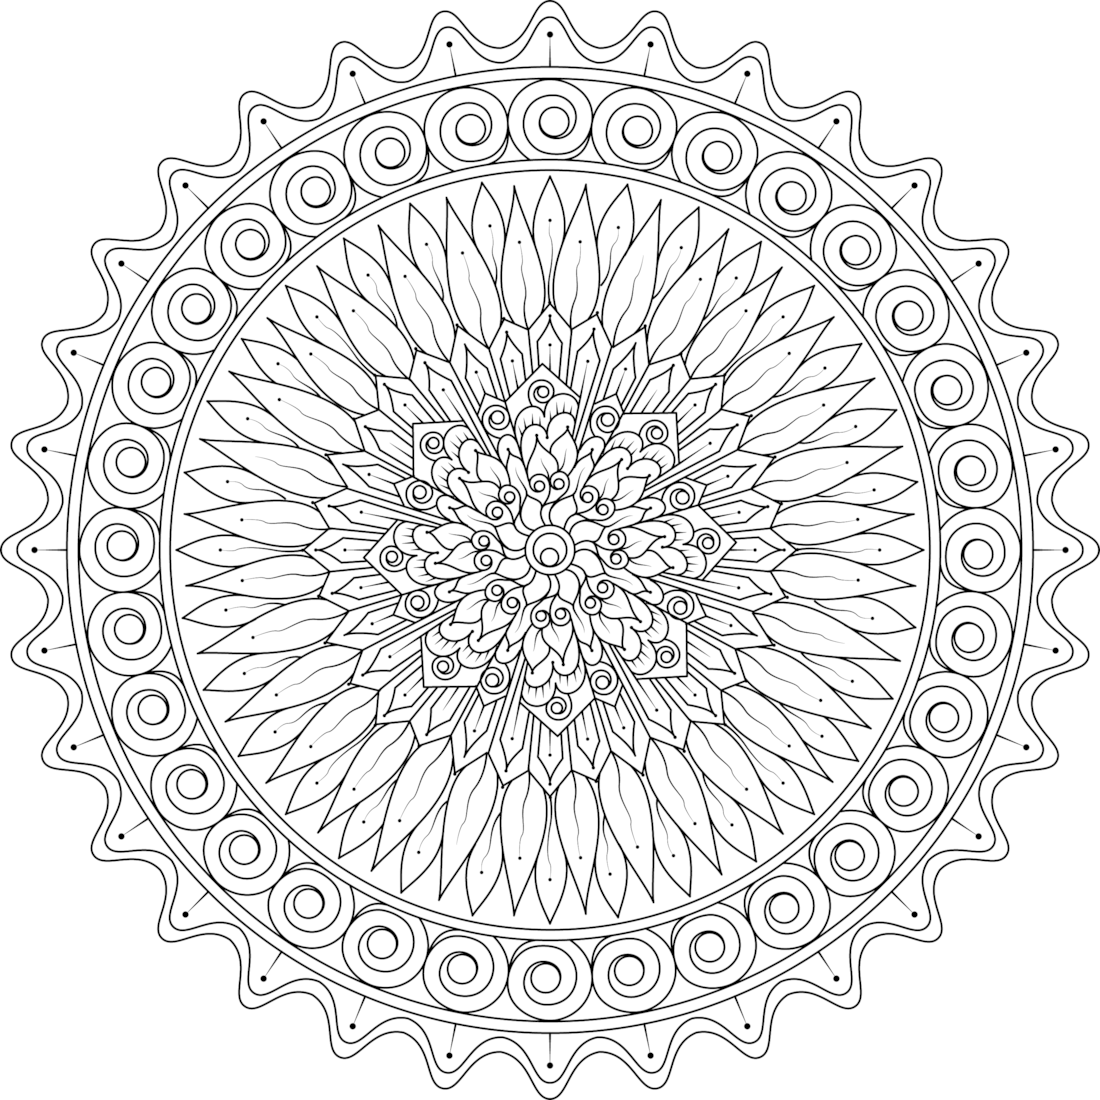 Picture of Kindled Love coloring page